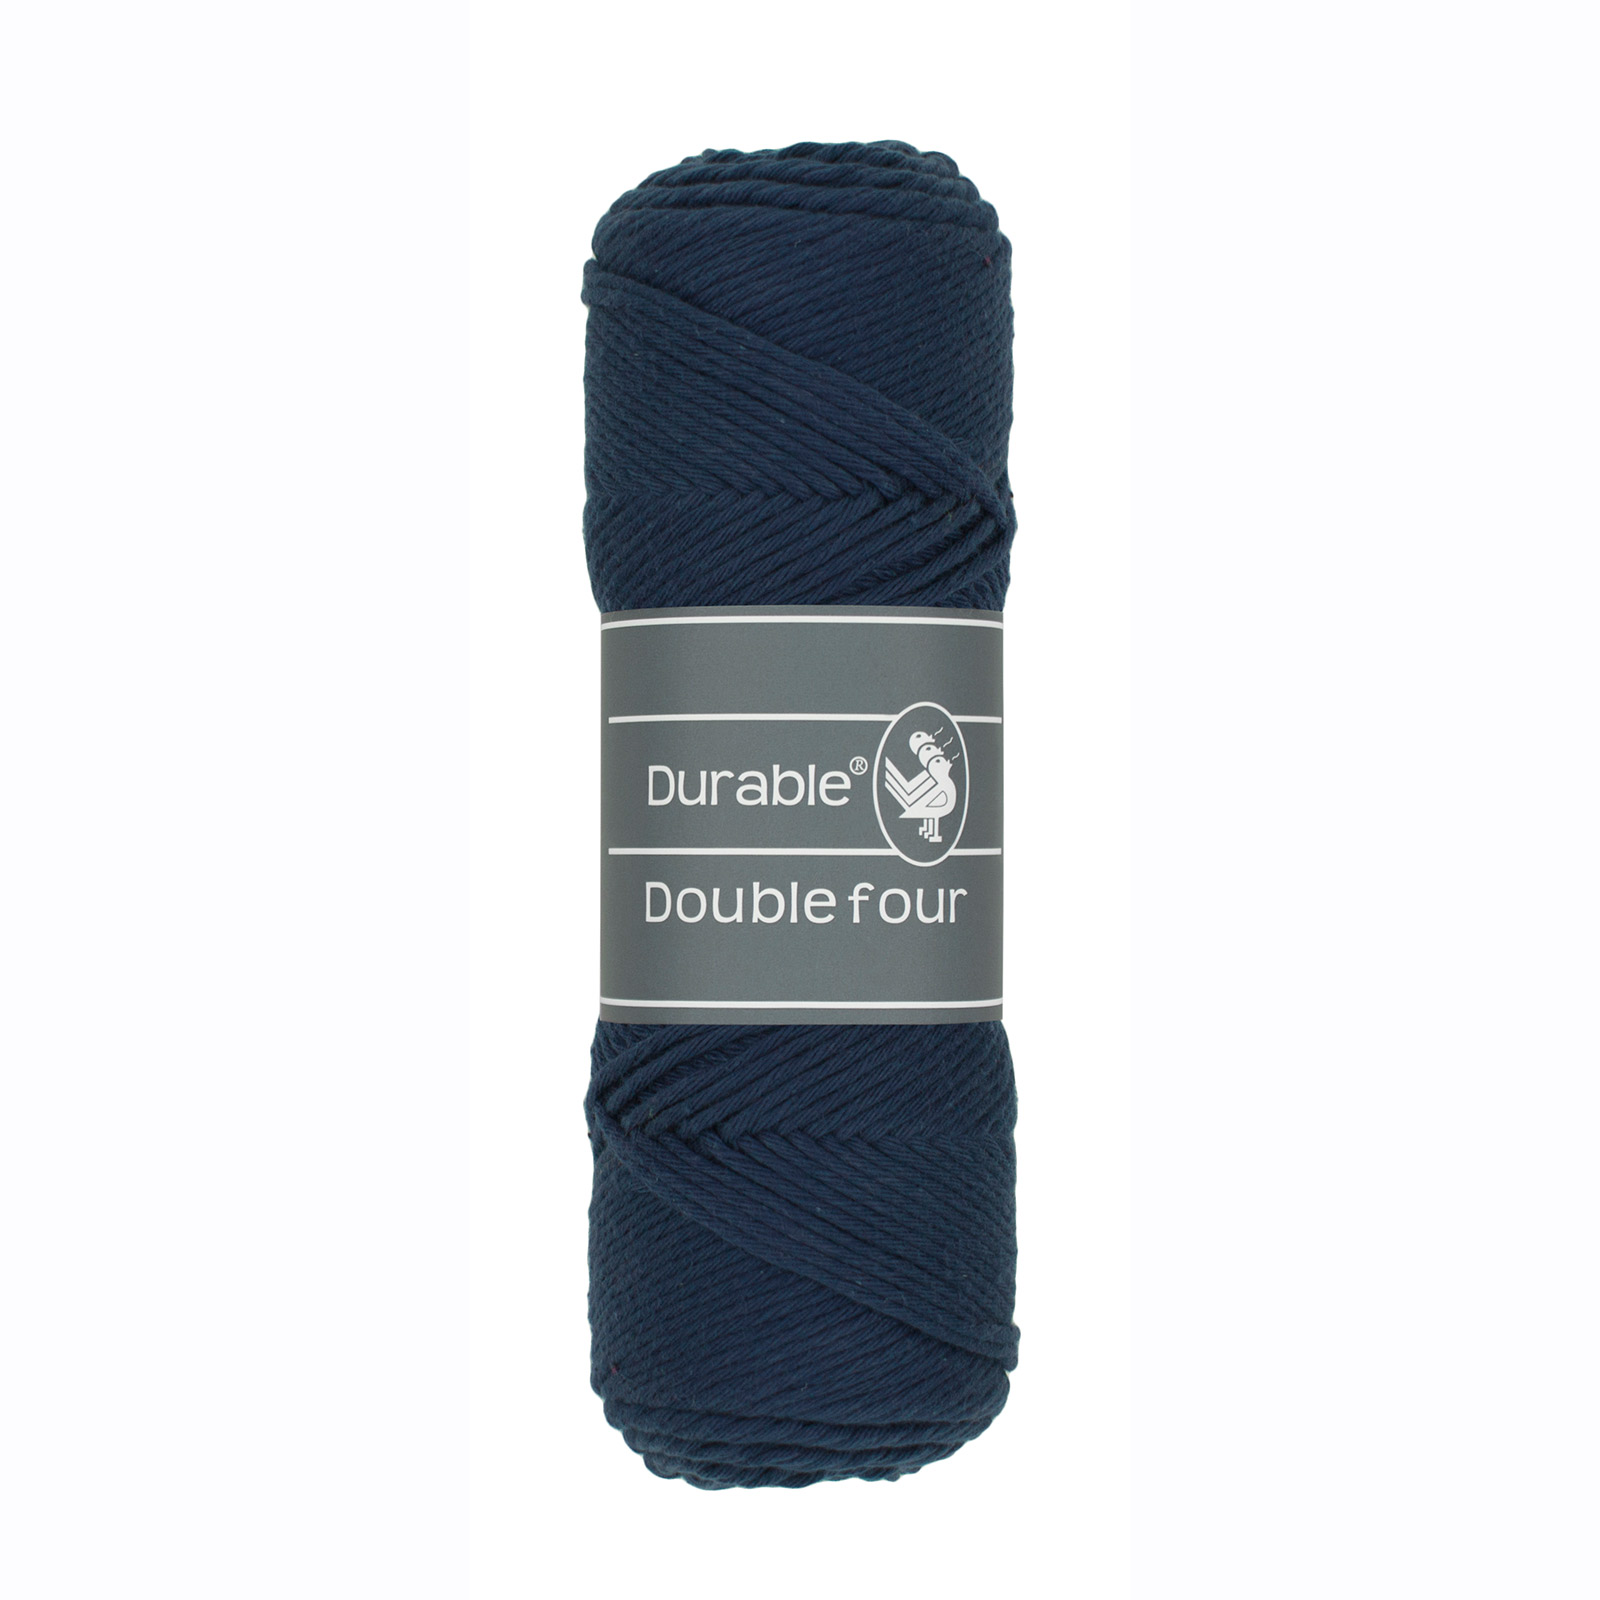 Durable Double Four – 321 Navy